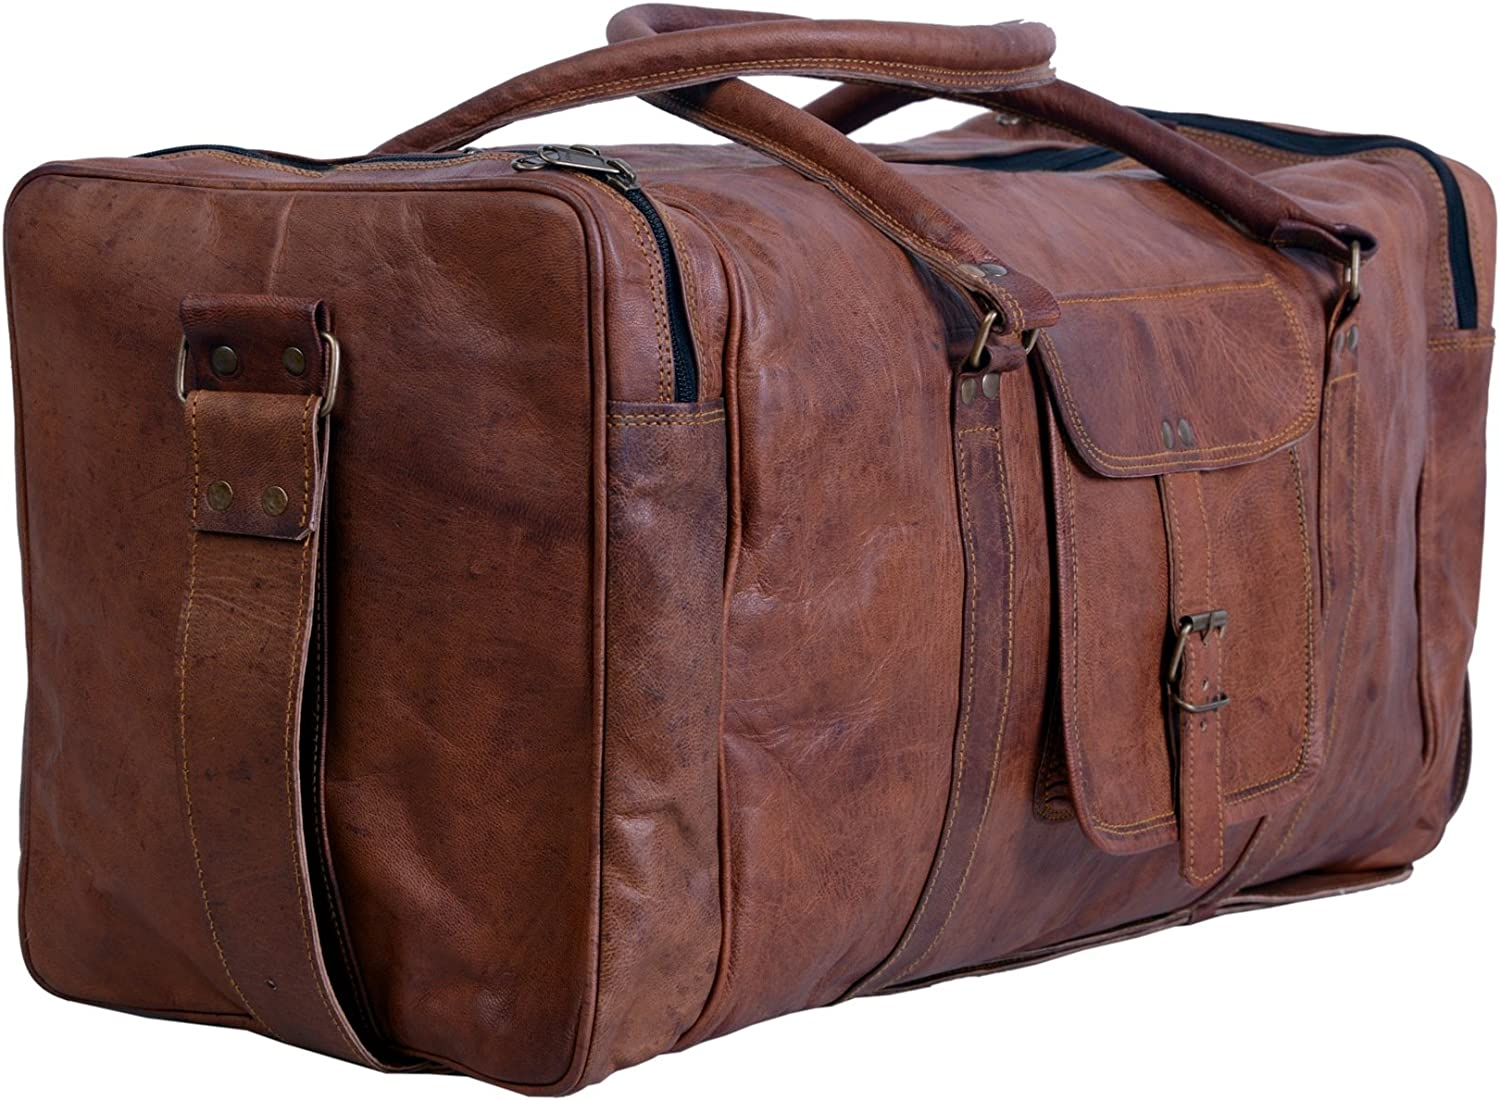 Spot on New Large Mens Leather Vintage Duffle Luggage Weekend Gym Overnight Travel Bag Great Gift For Men And Women